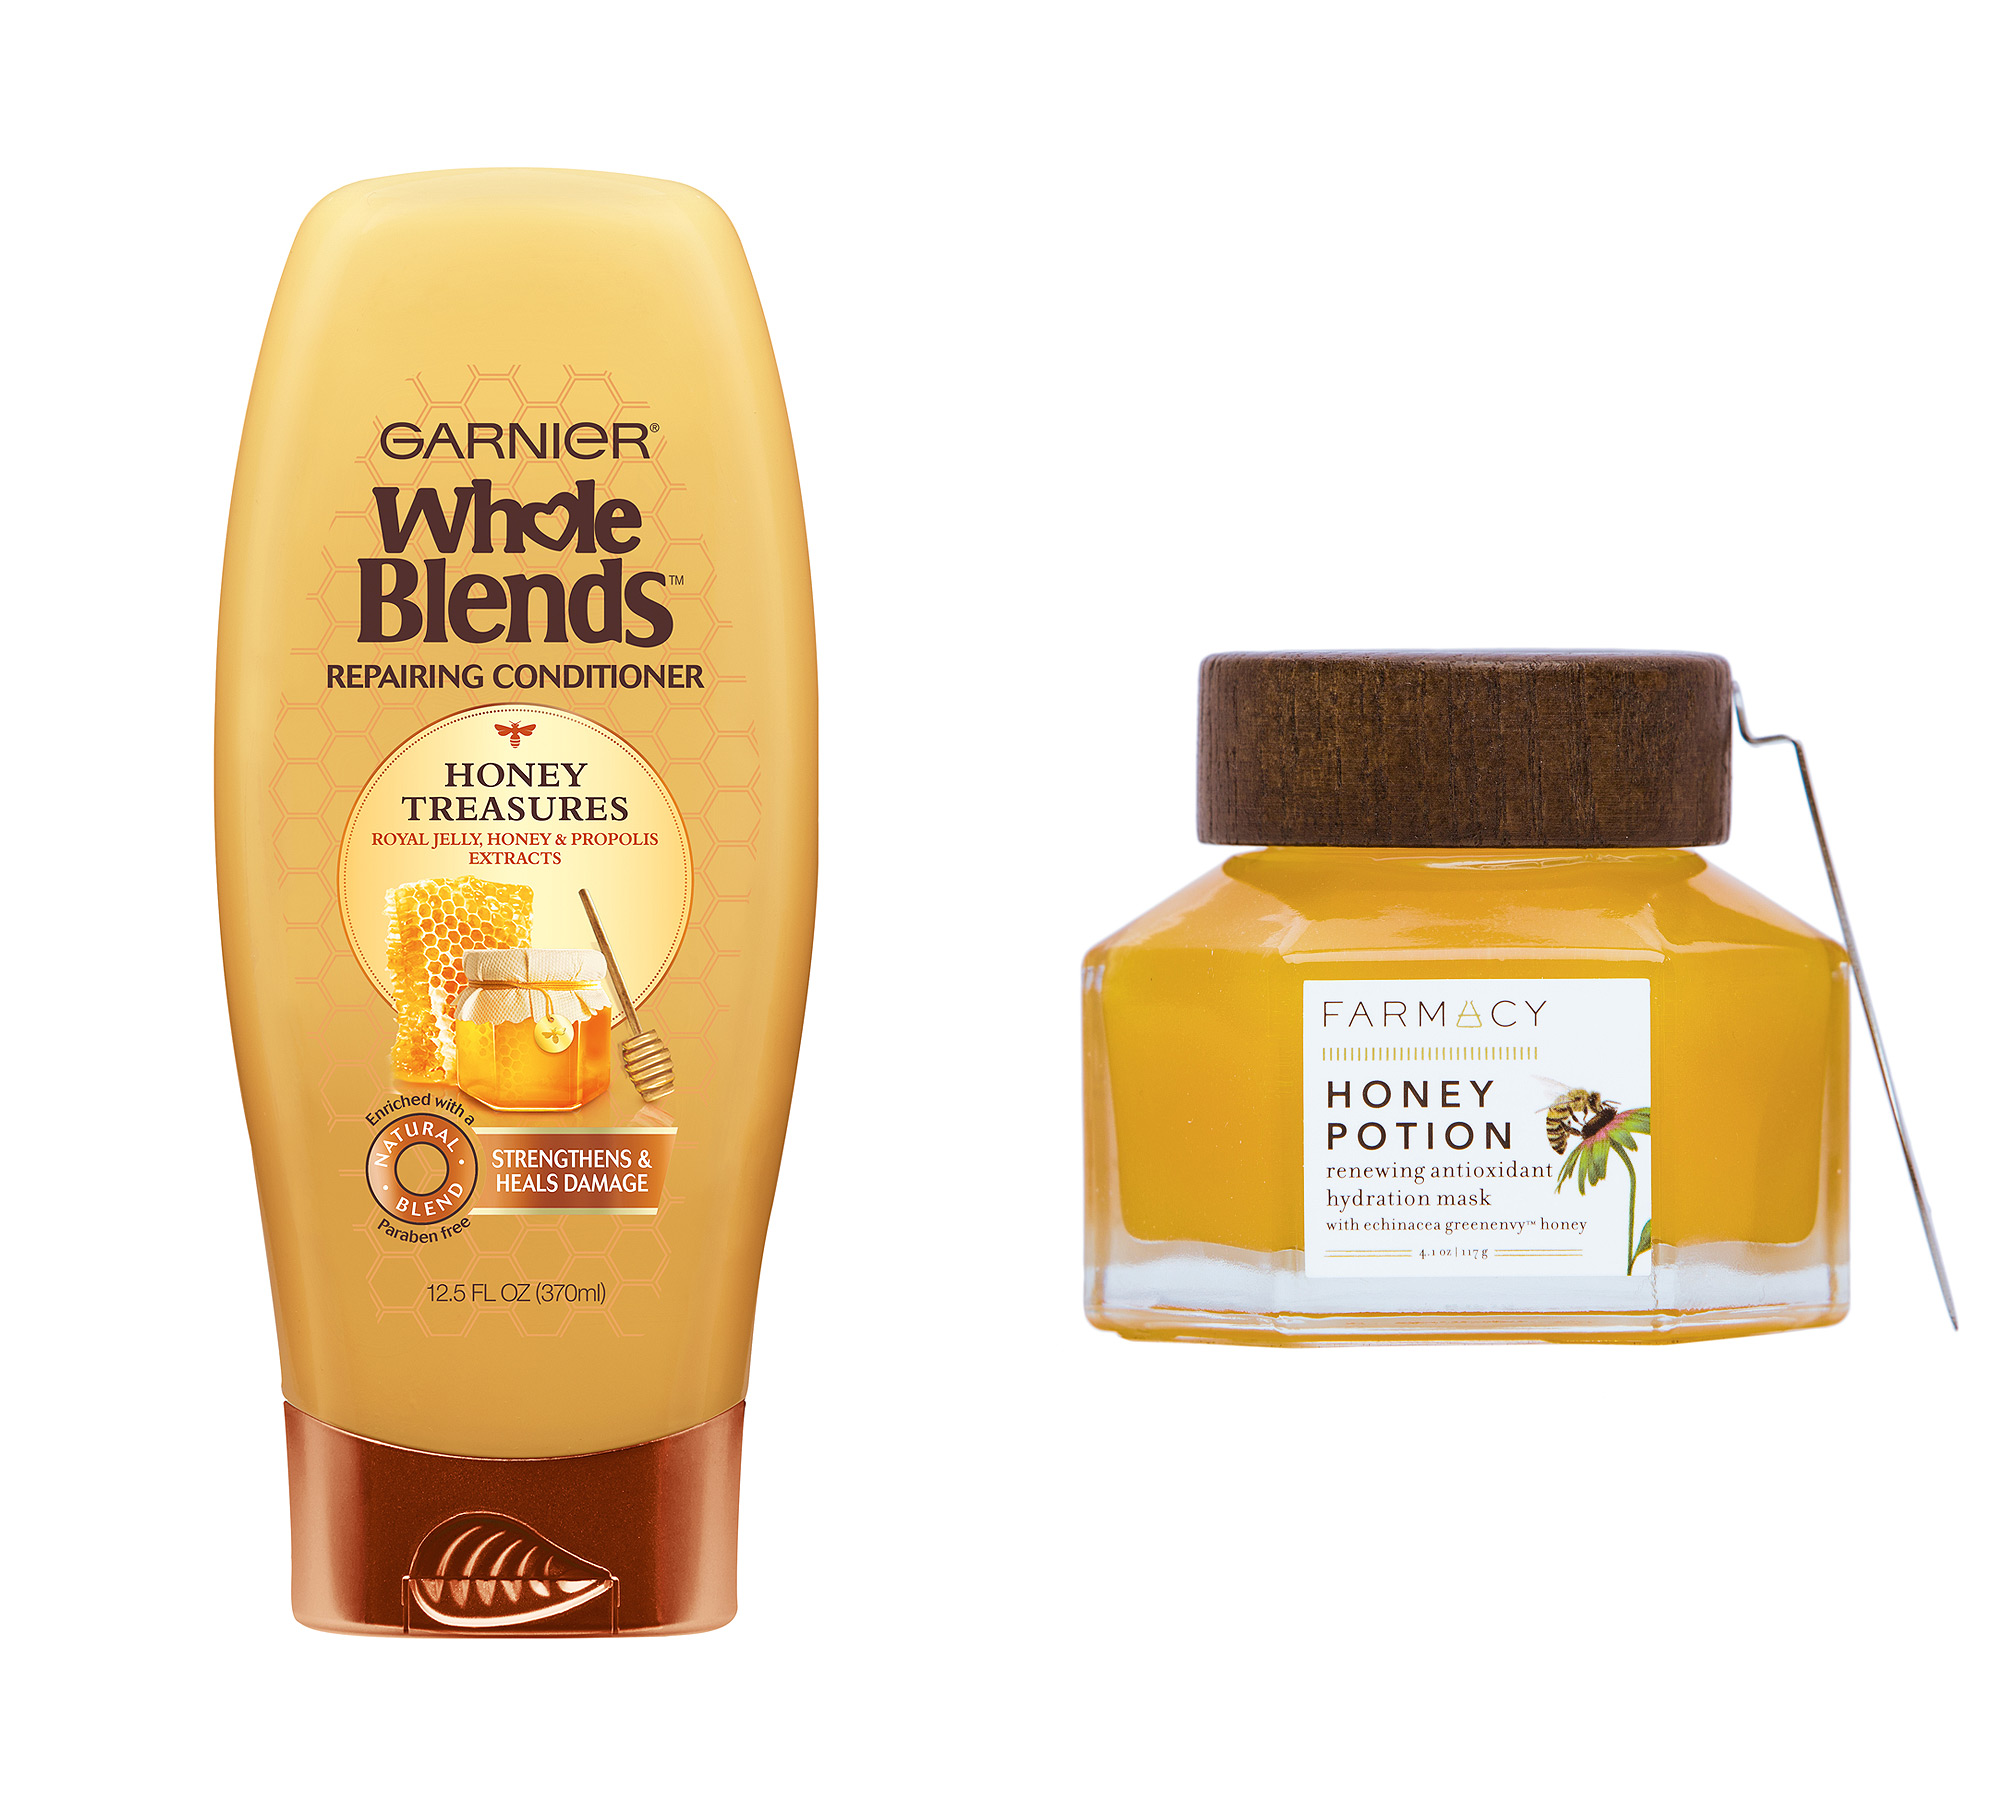 HONEY-INFUSED PRODUCTS